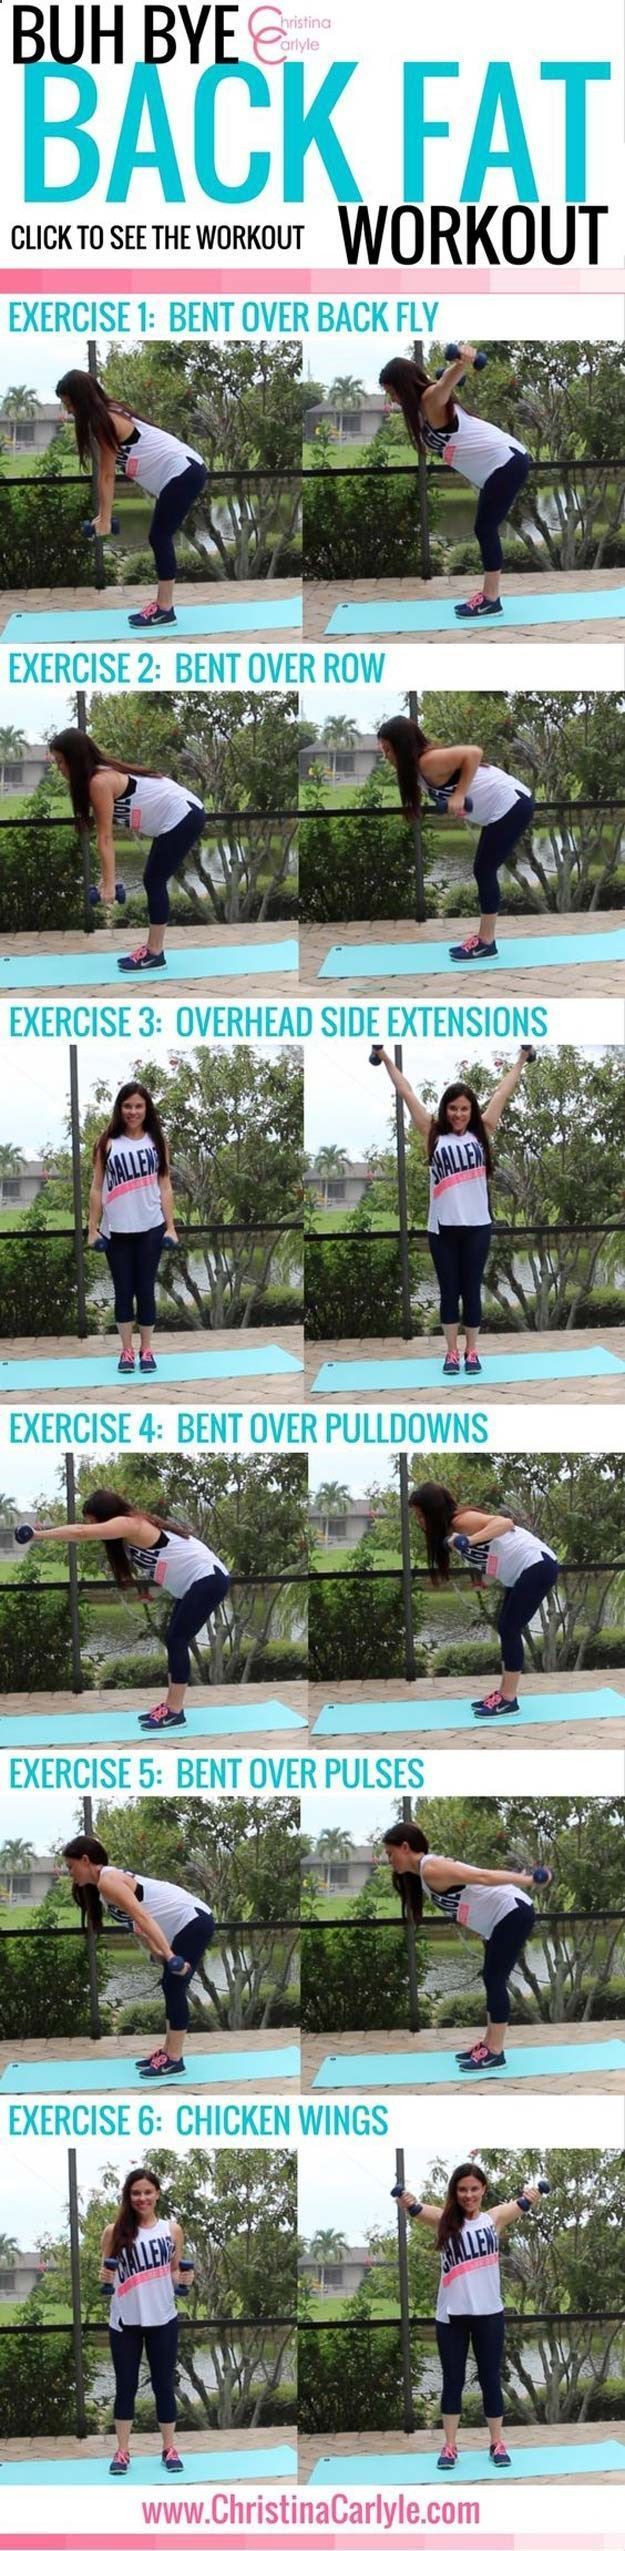 Best Exercises for Abs - Workouts for women - Exercises for Back Fat - Best Ab Exercises And Ab Workouts For A Flat Stomach, Increased Health Fitness, And Weightless. Ab Exercises For Women, For Men, And For Kids. Great With A Diet To Help With Losing Wei https://www.musclesaurus.com/flat-stomach-exercises/